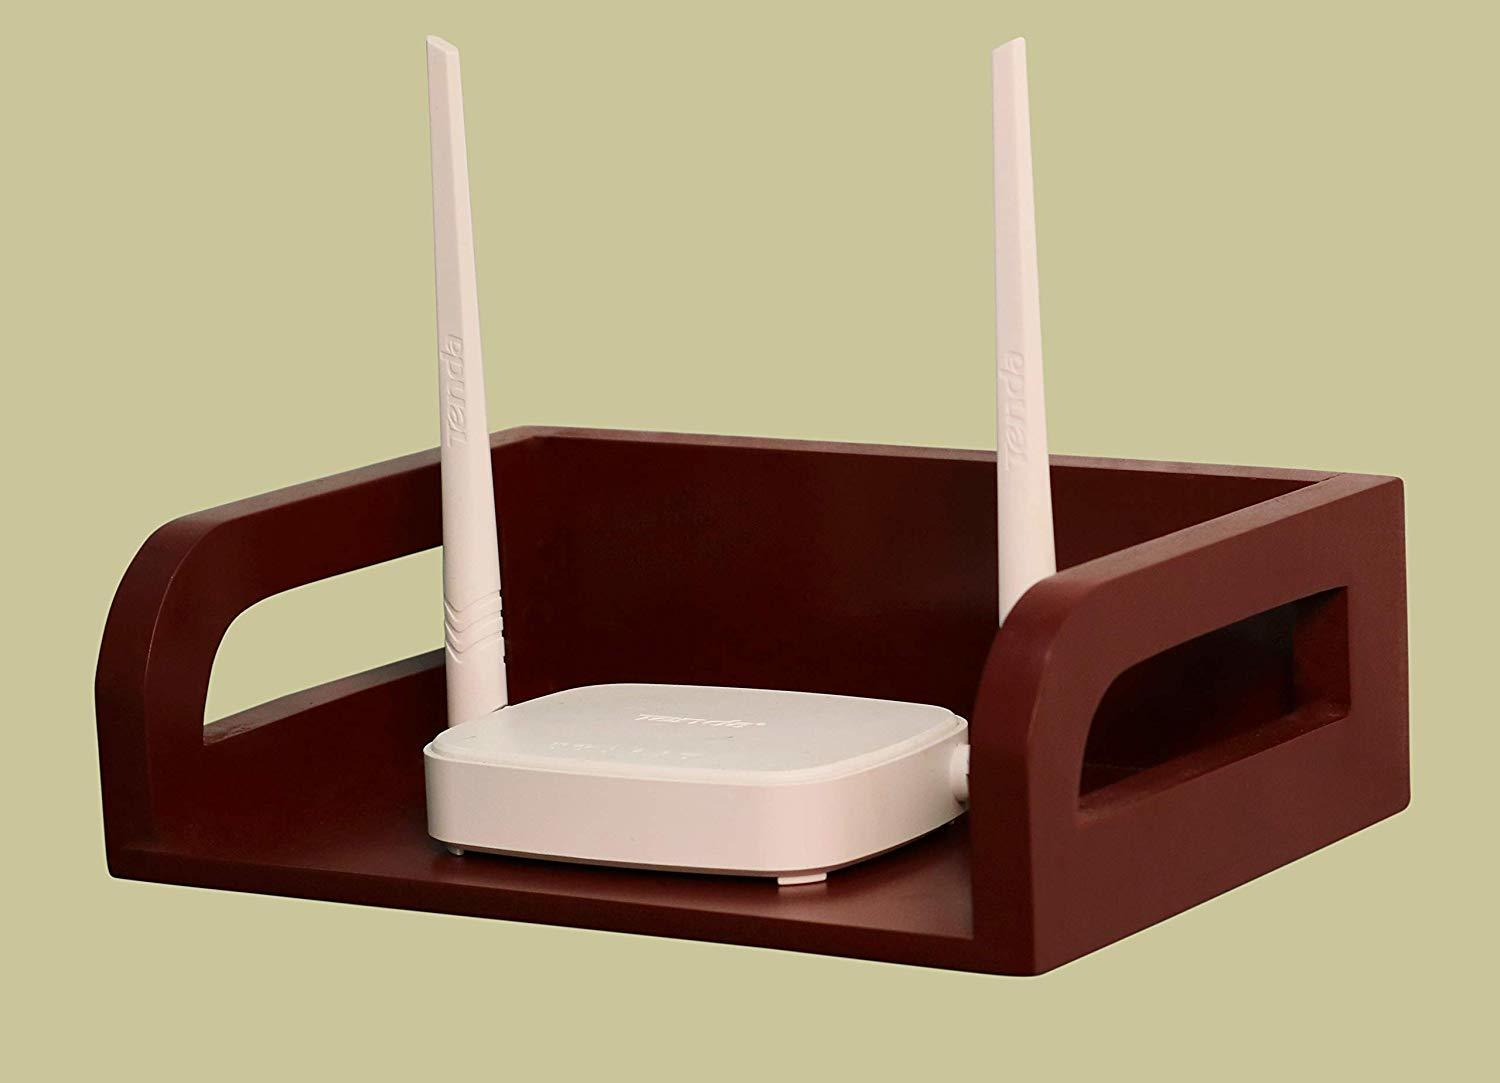 Floating Shelf Wooden Router Remotes Control Holder WiFi Router Storage Boxes TV Accessories TV Box Set Top Box Stand